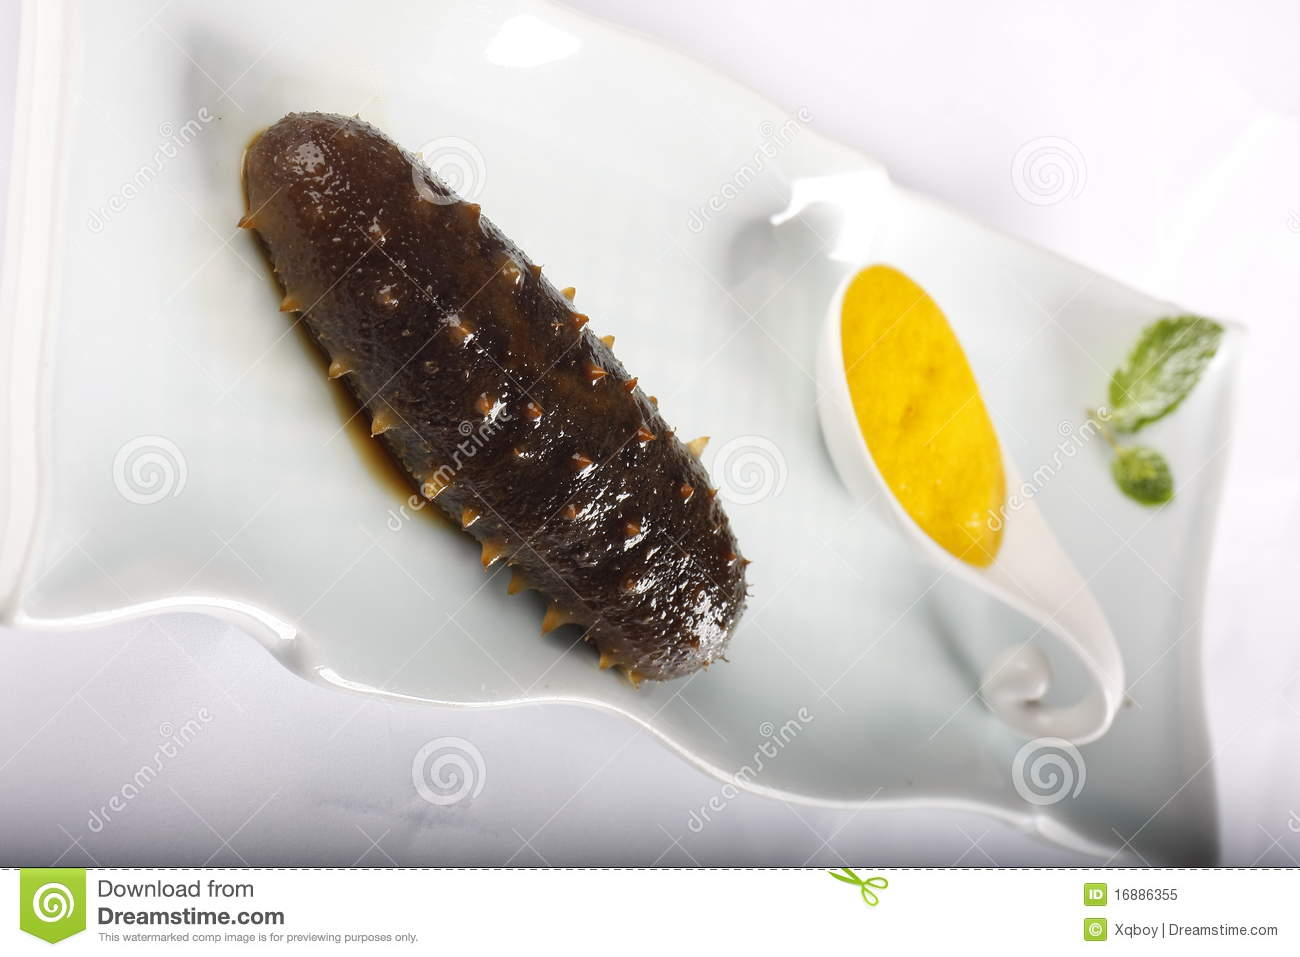 Cooked Sea Cucumber Royalty Free Stock Photo - Image: 16886355